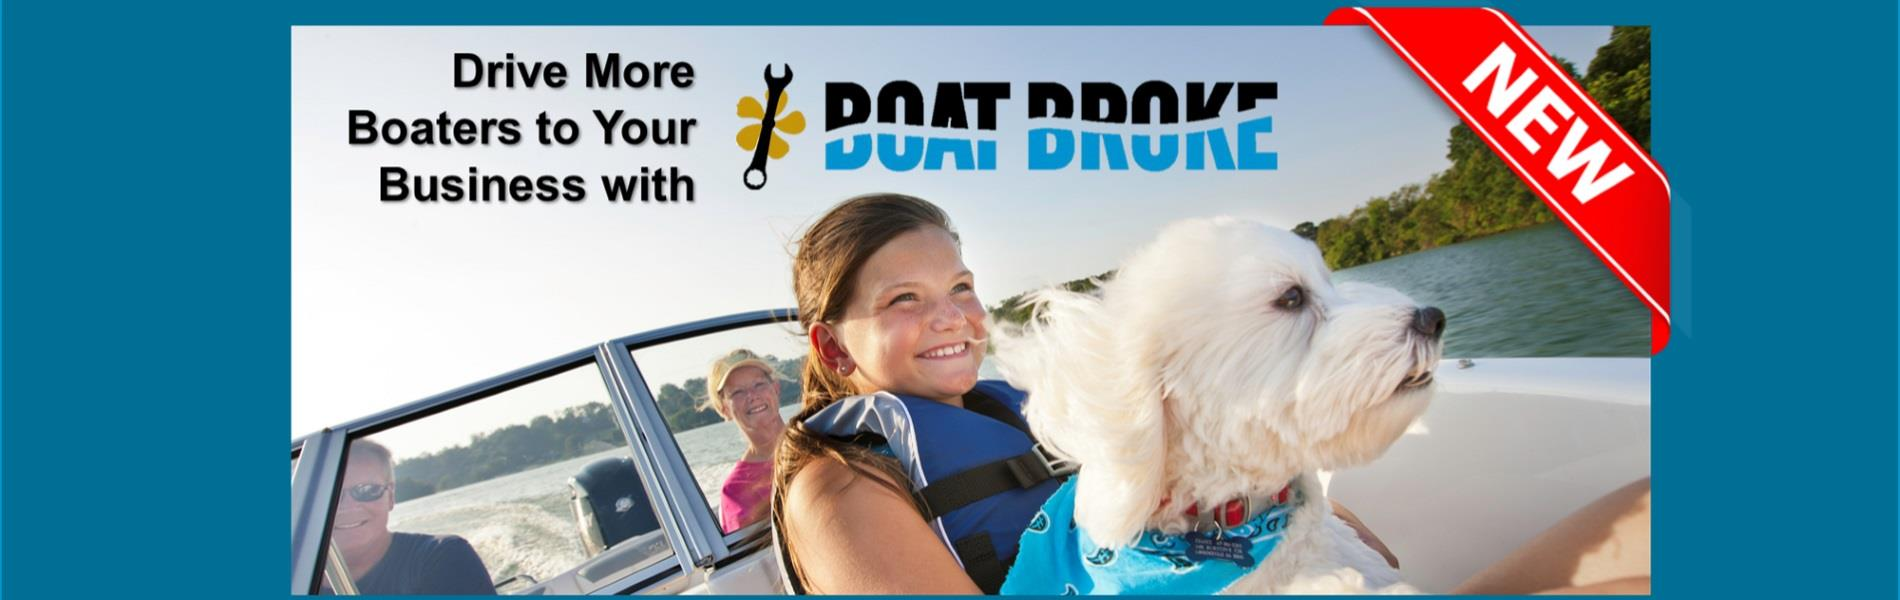 NEW - Drive More Boaters to Your Business